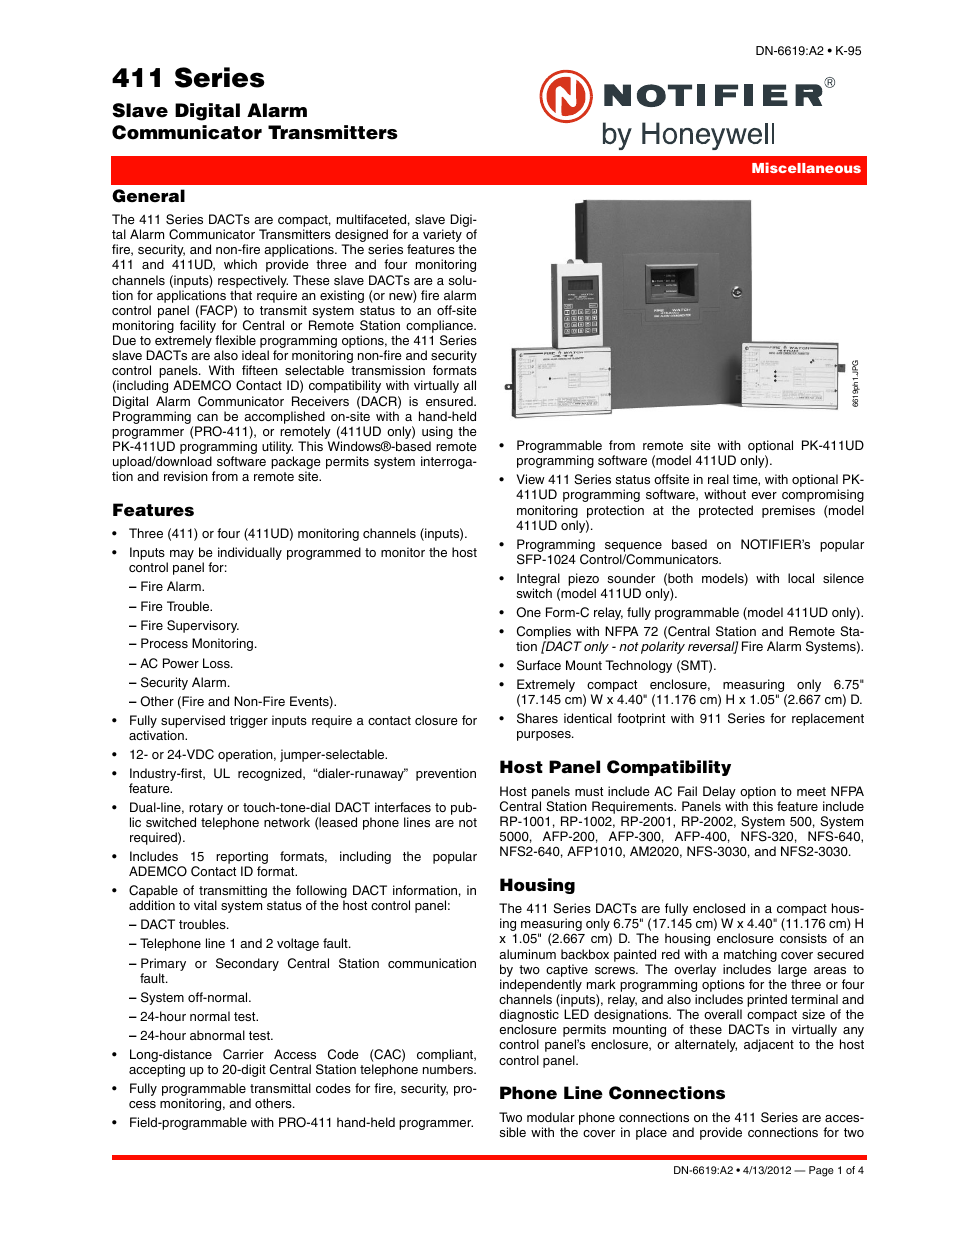 Notifier 411 Series User Manual | 4 pages